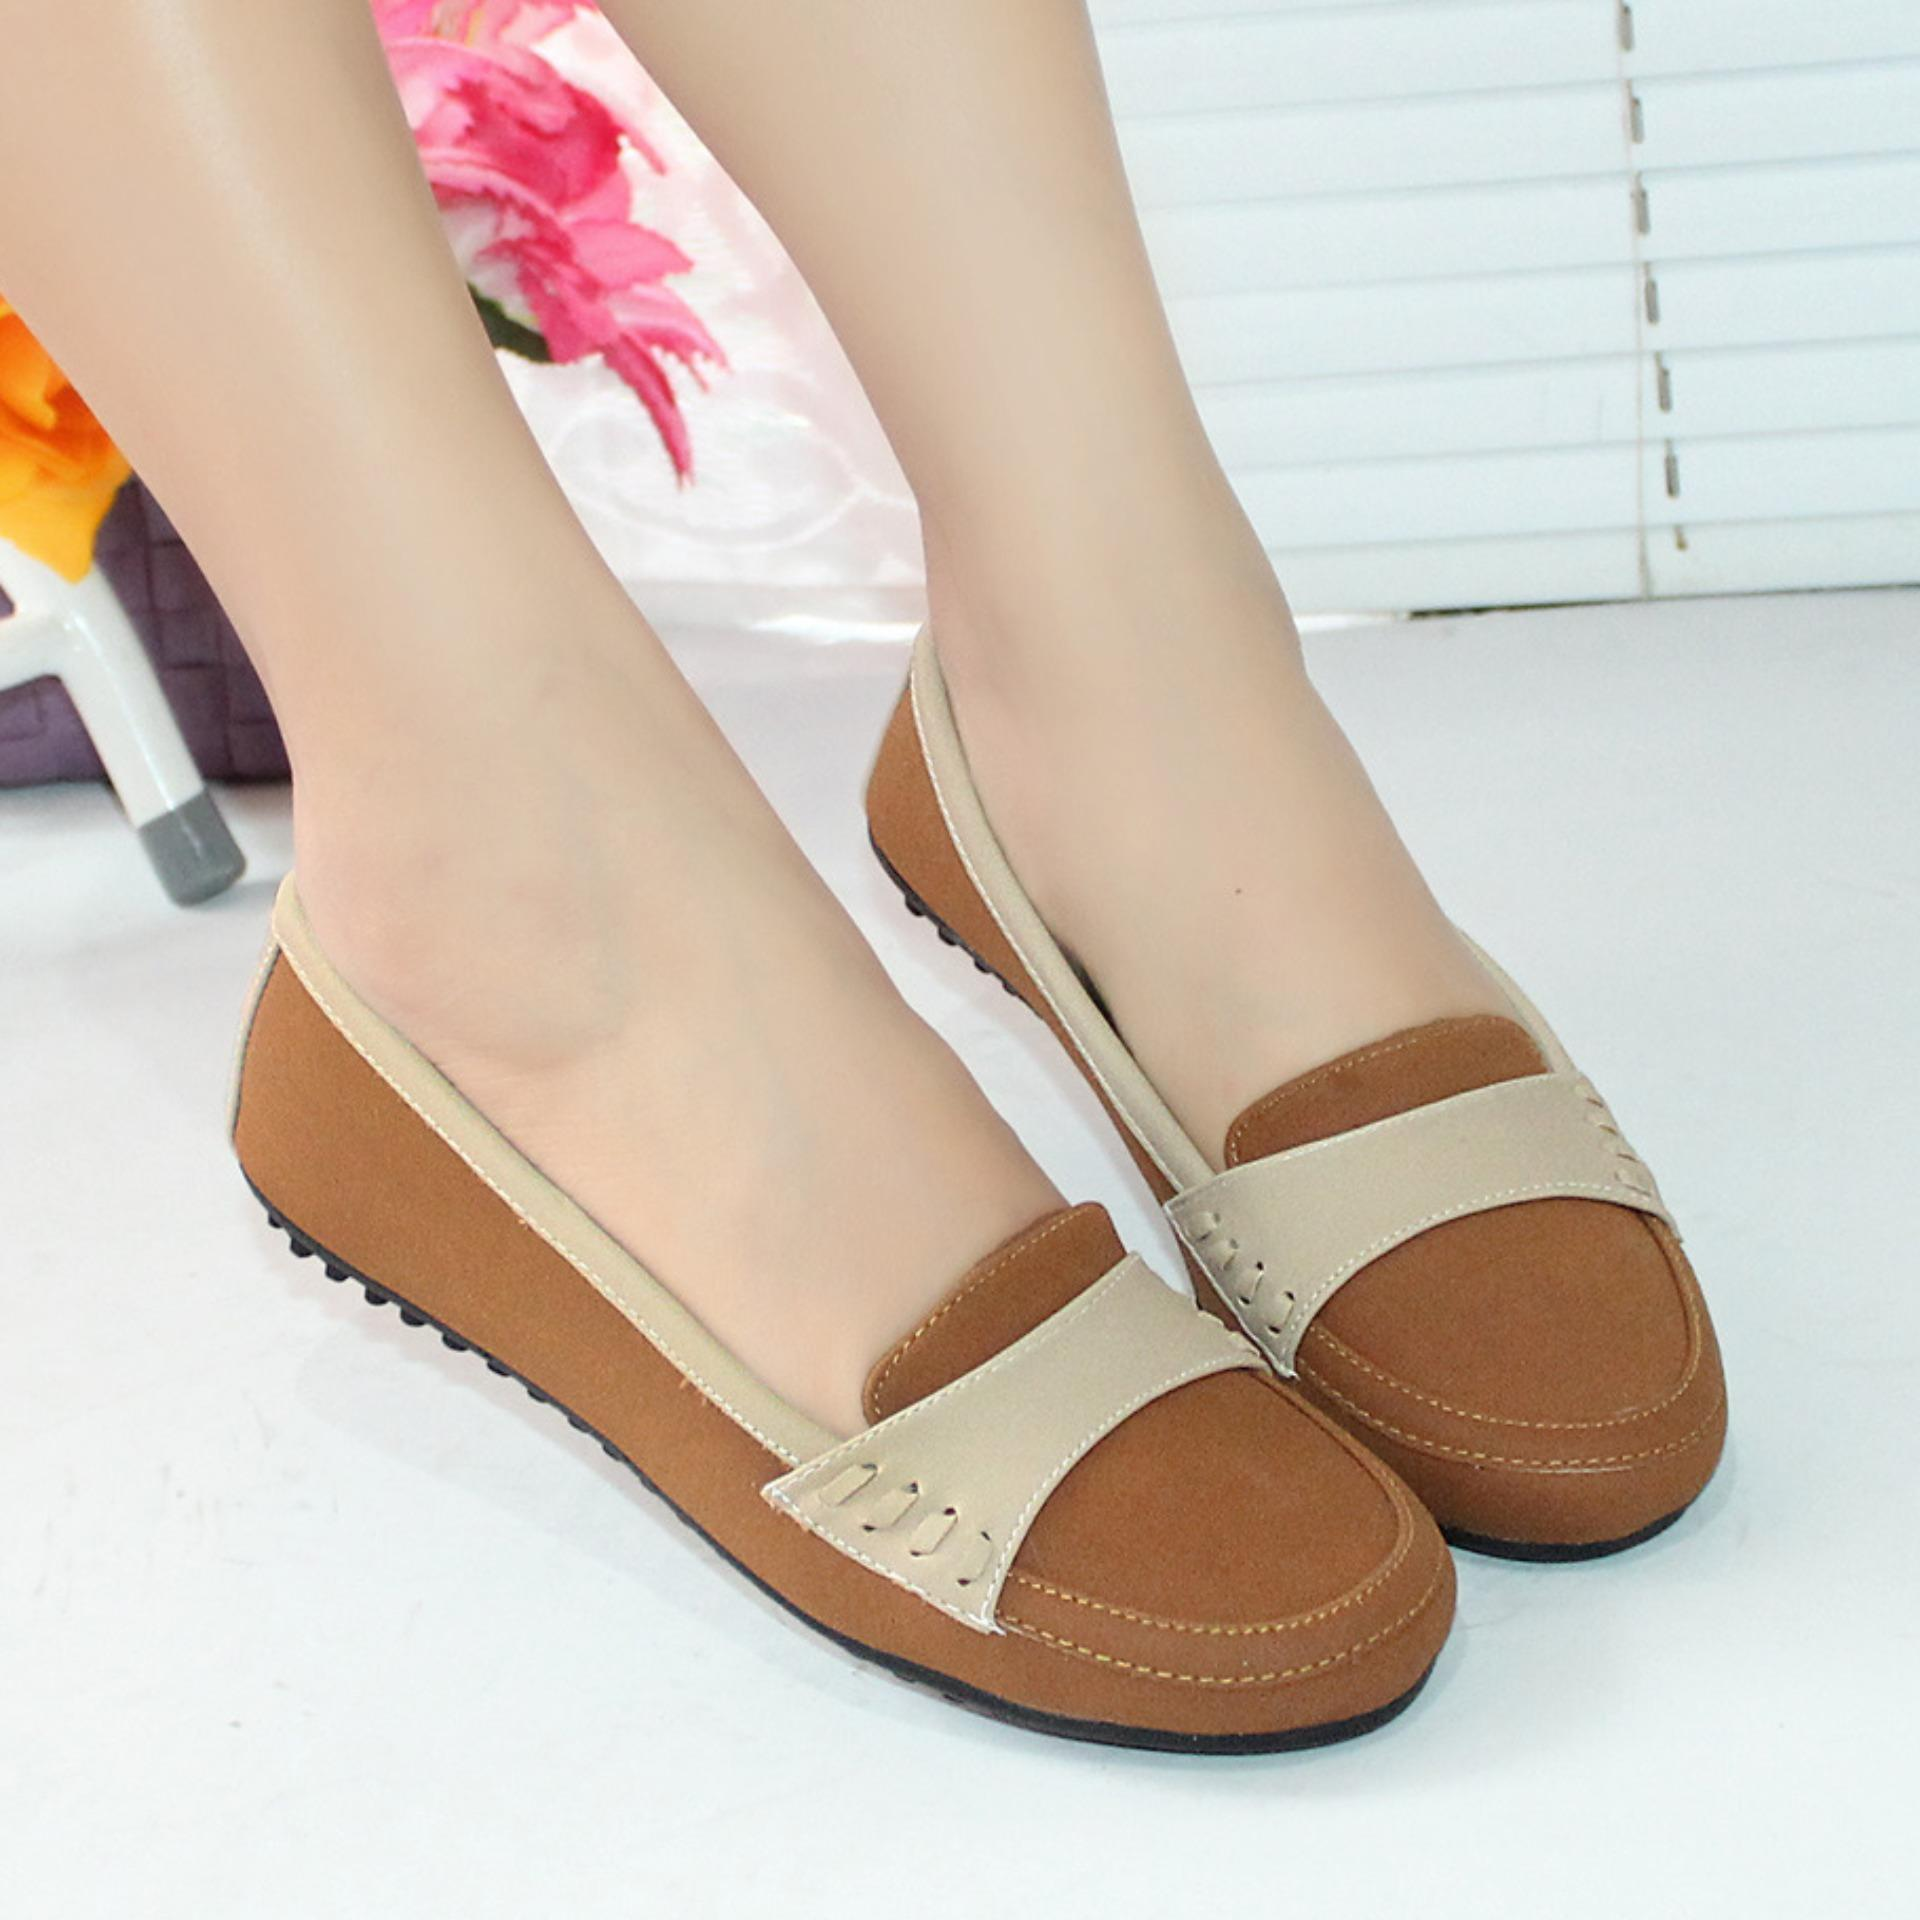 Harga Gratica Flatshoes Flat Shoes Nfz 20 New